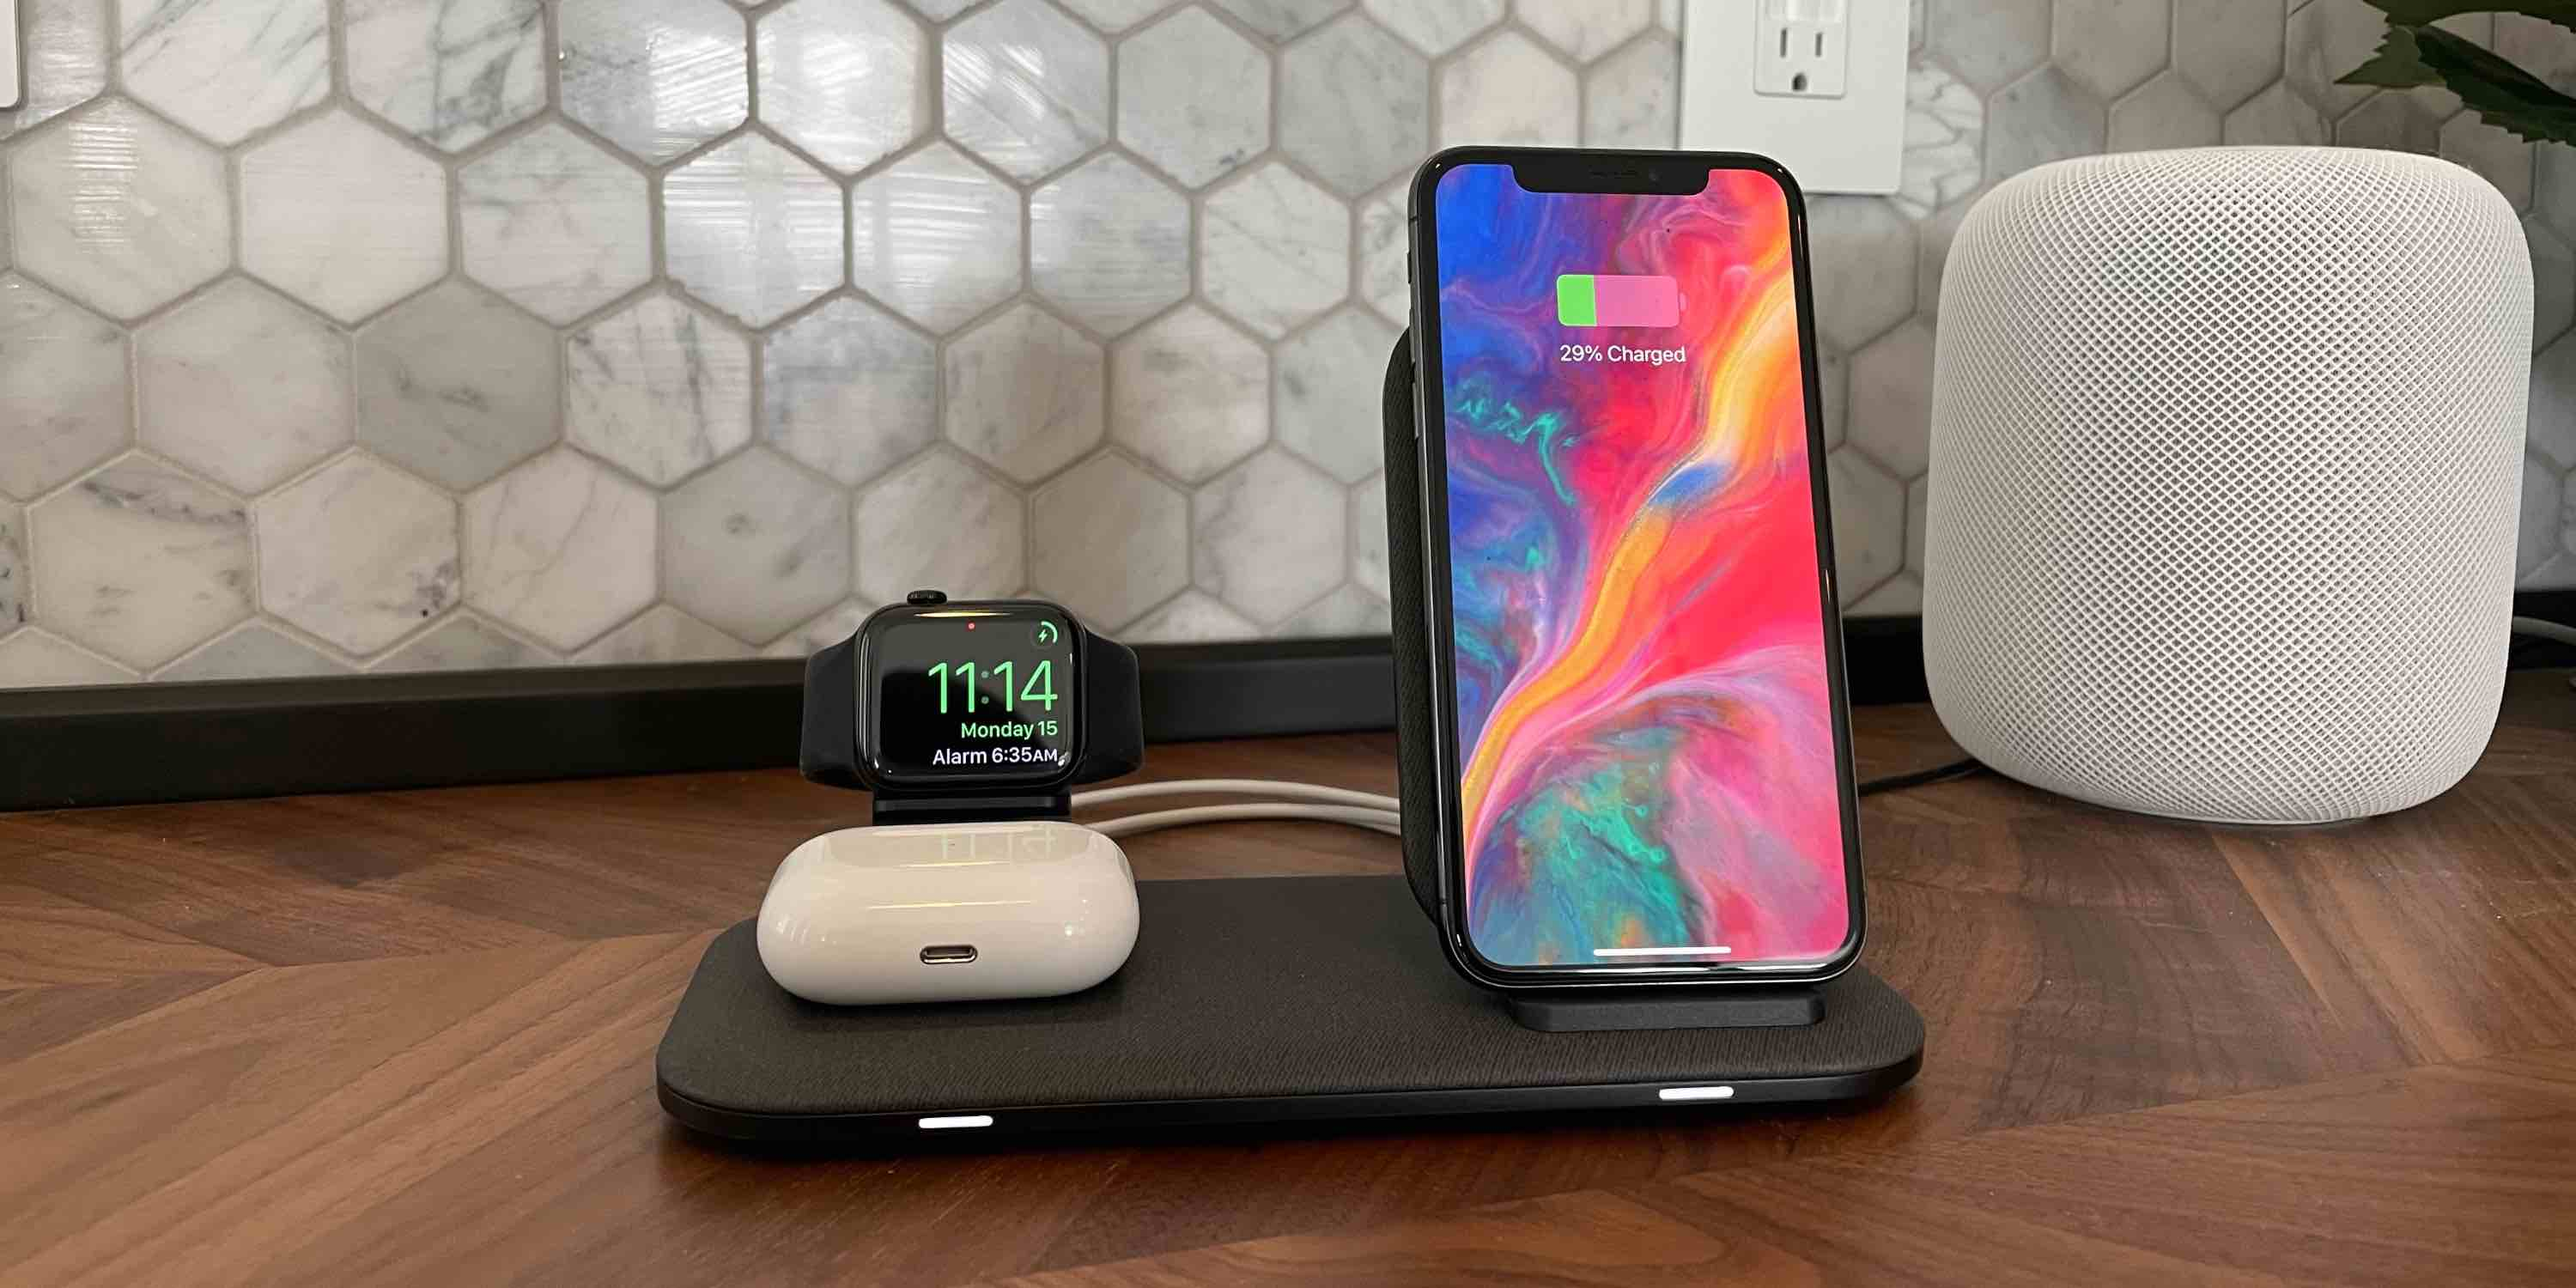 Revise Mophie Charging Station + para iPhone, Apple Watch, AirPods y más